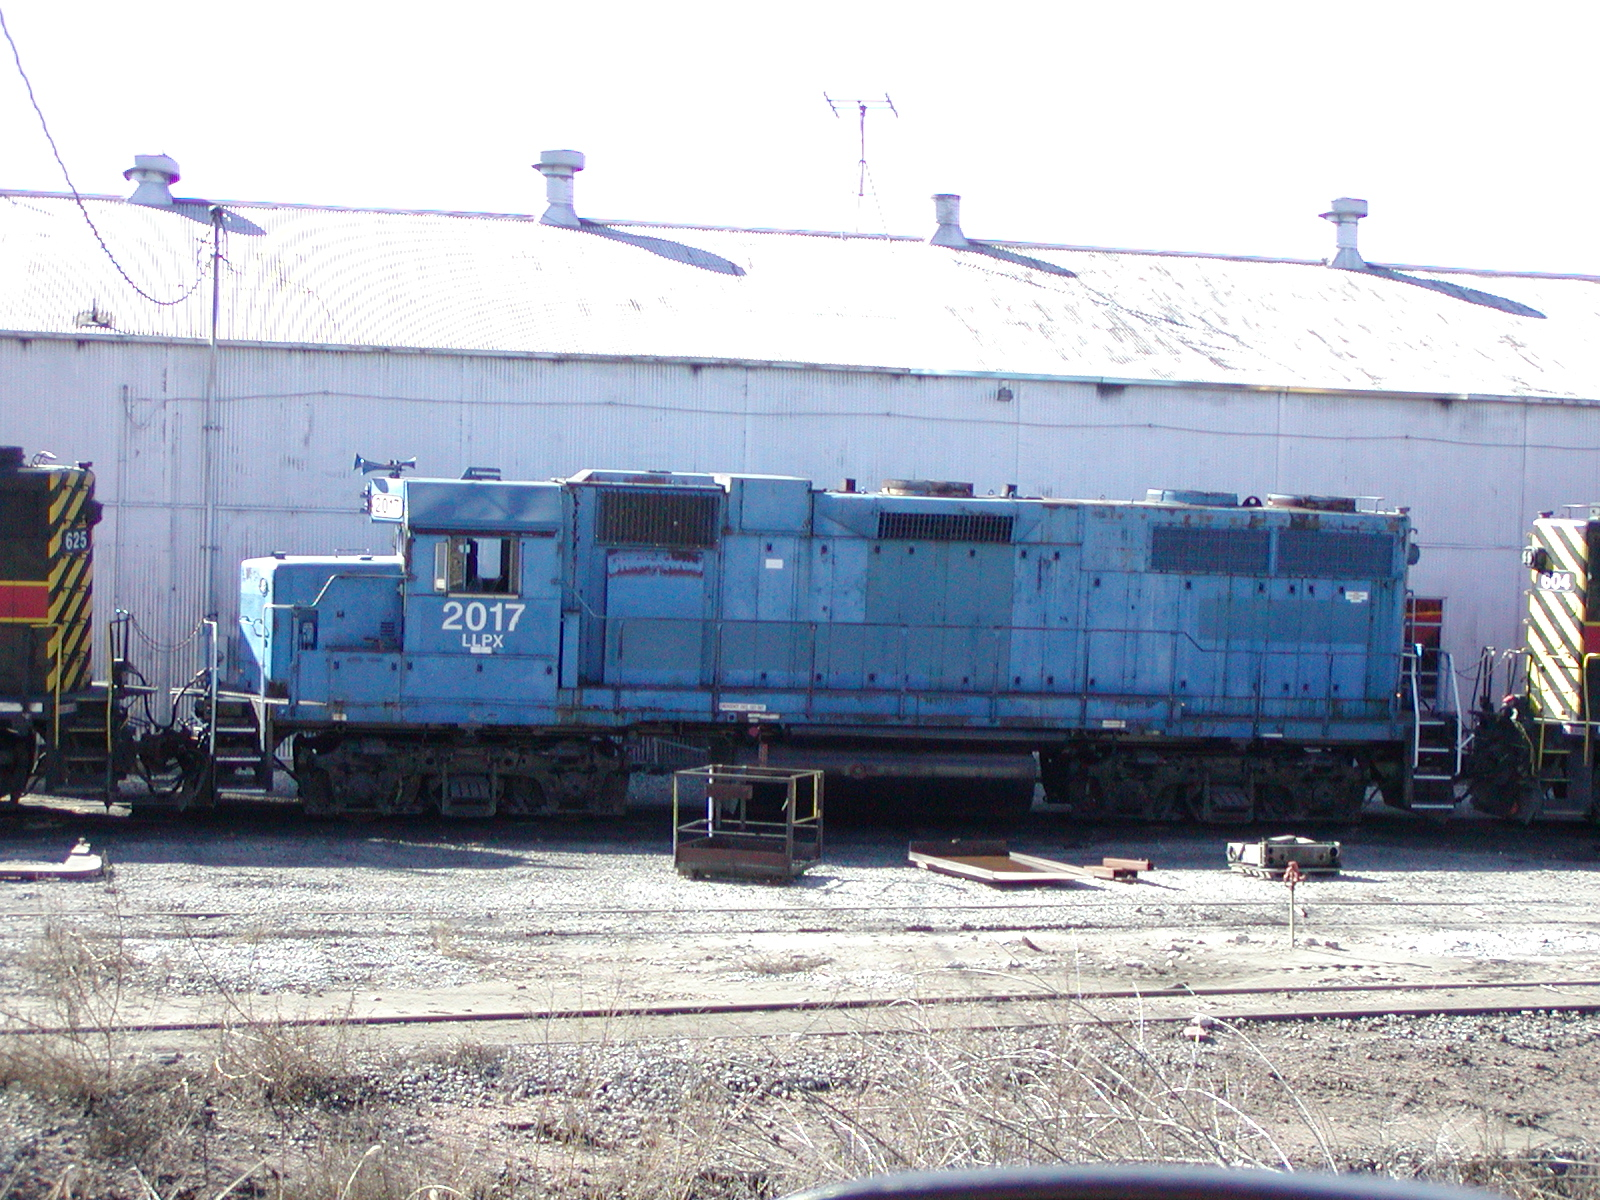 LLPX 2017 at Council Bluffs, IA on 07-Nov-2002